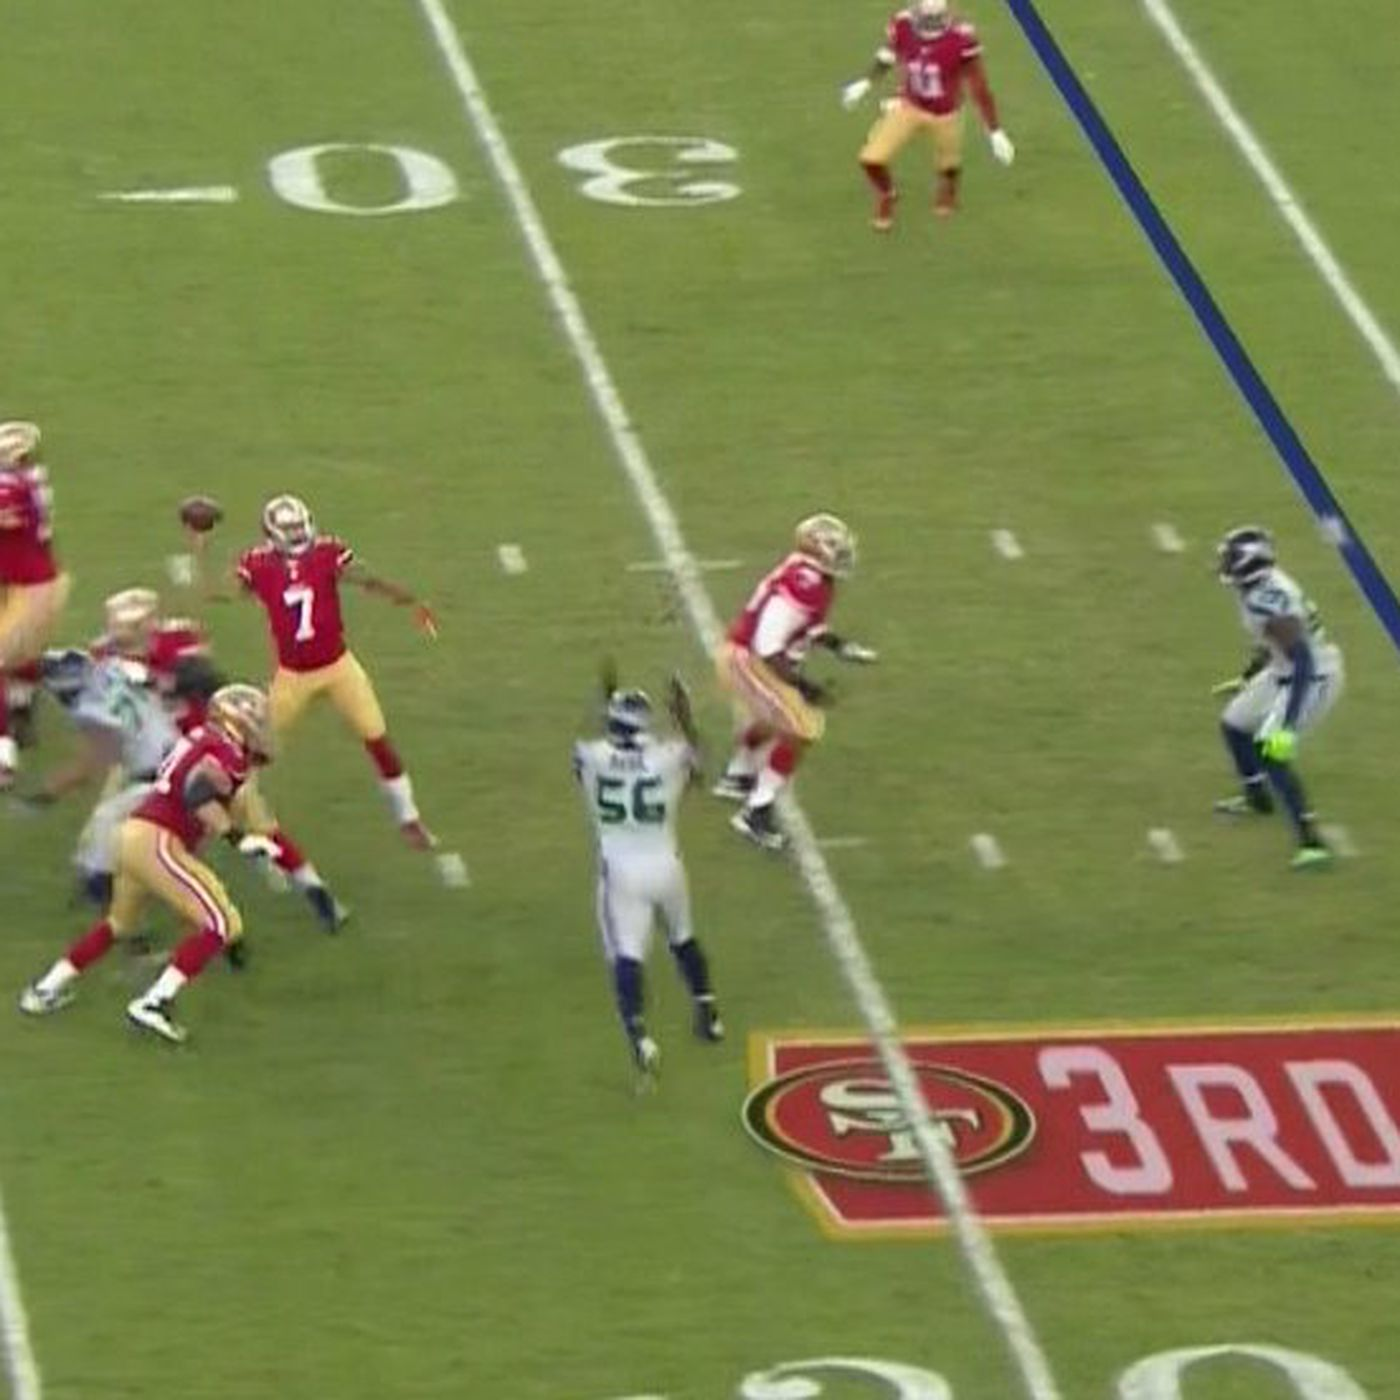 f76c8eaee20 Colin Kaepernick drills 49ers staffer on sideline in the head with errant  pass - SBNation.com